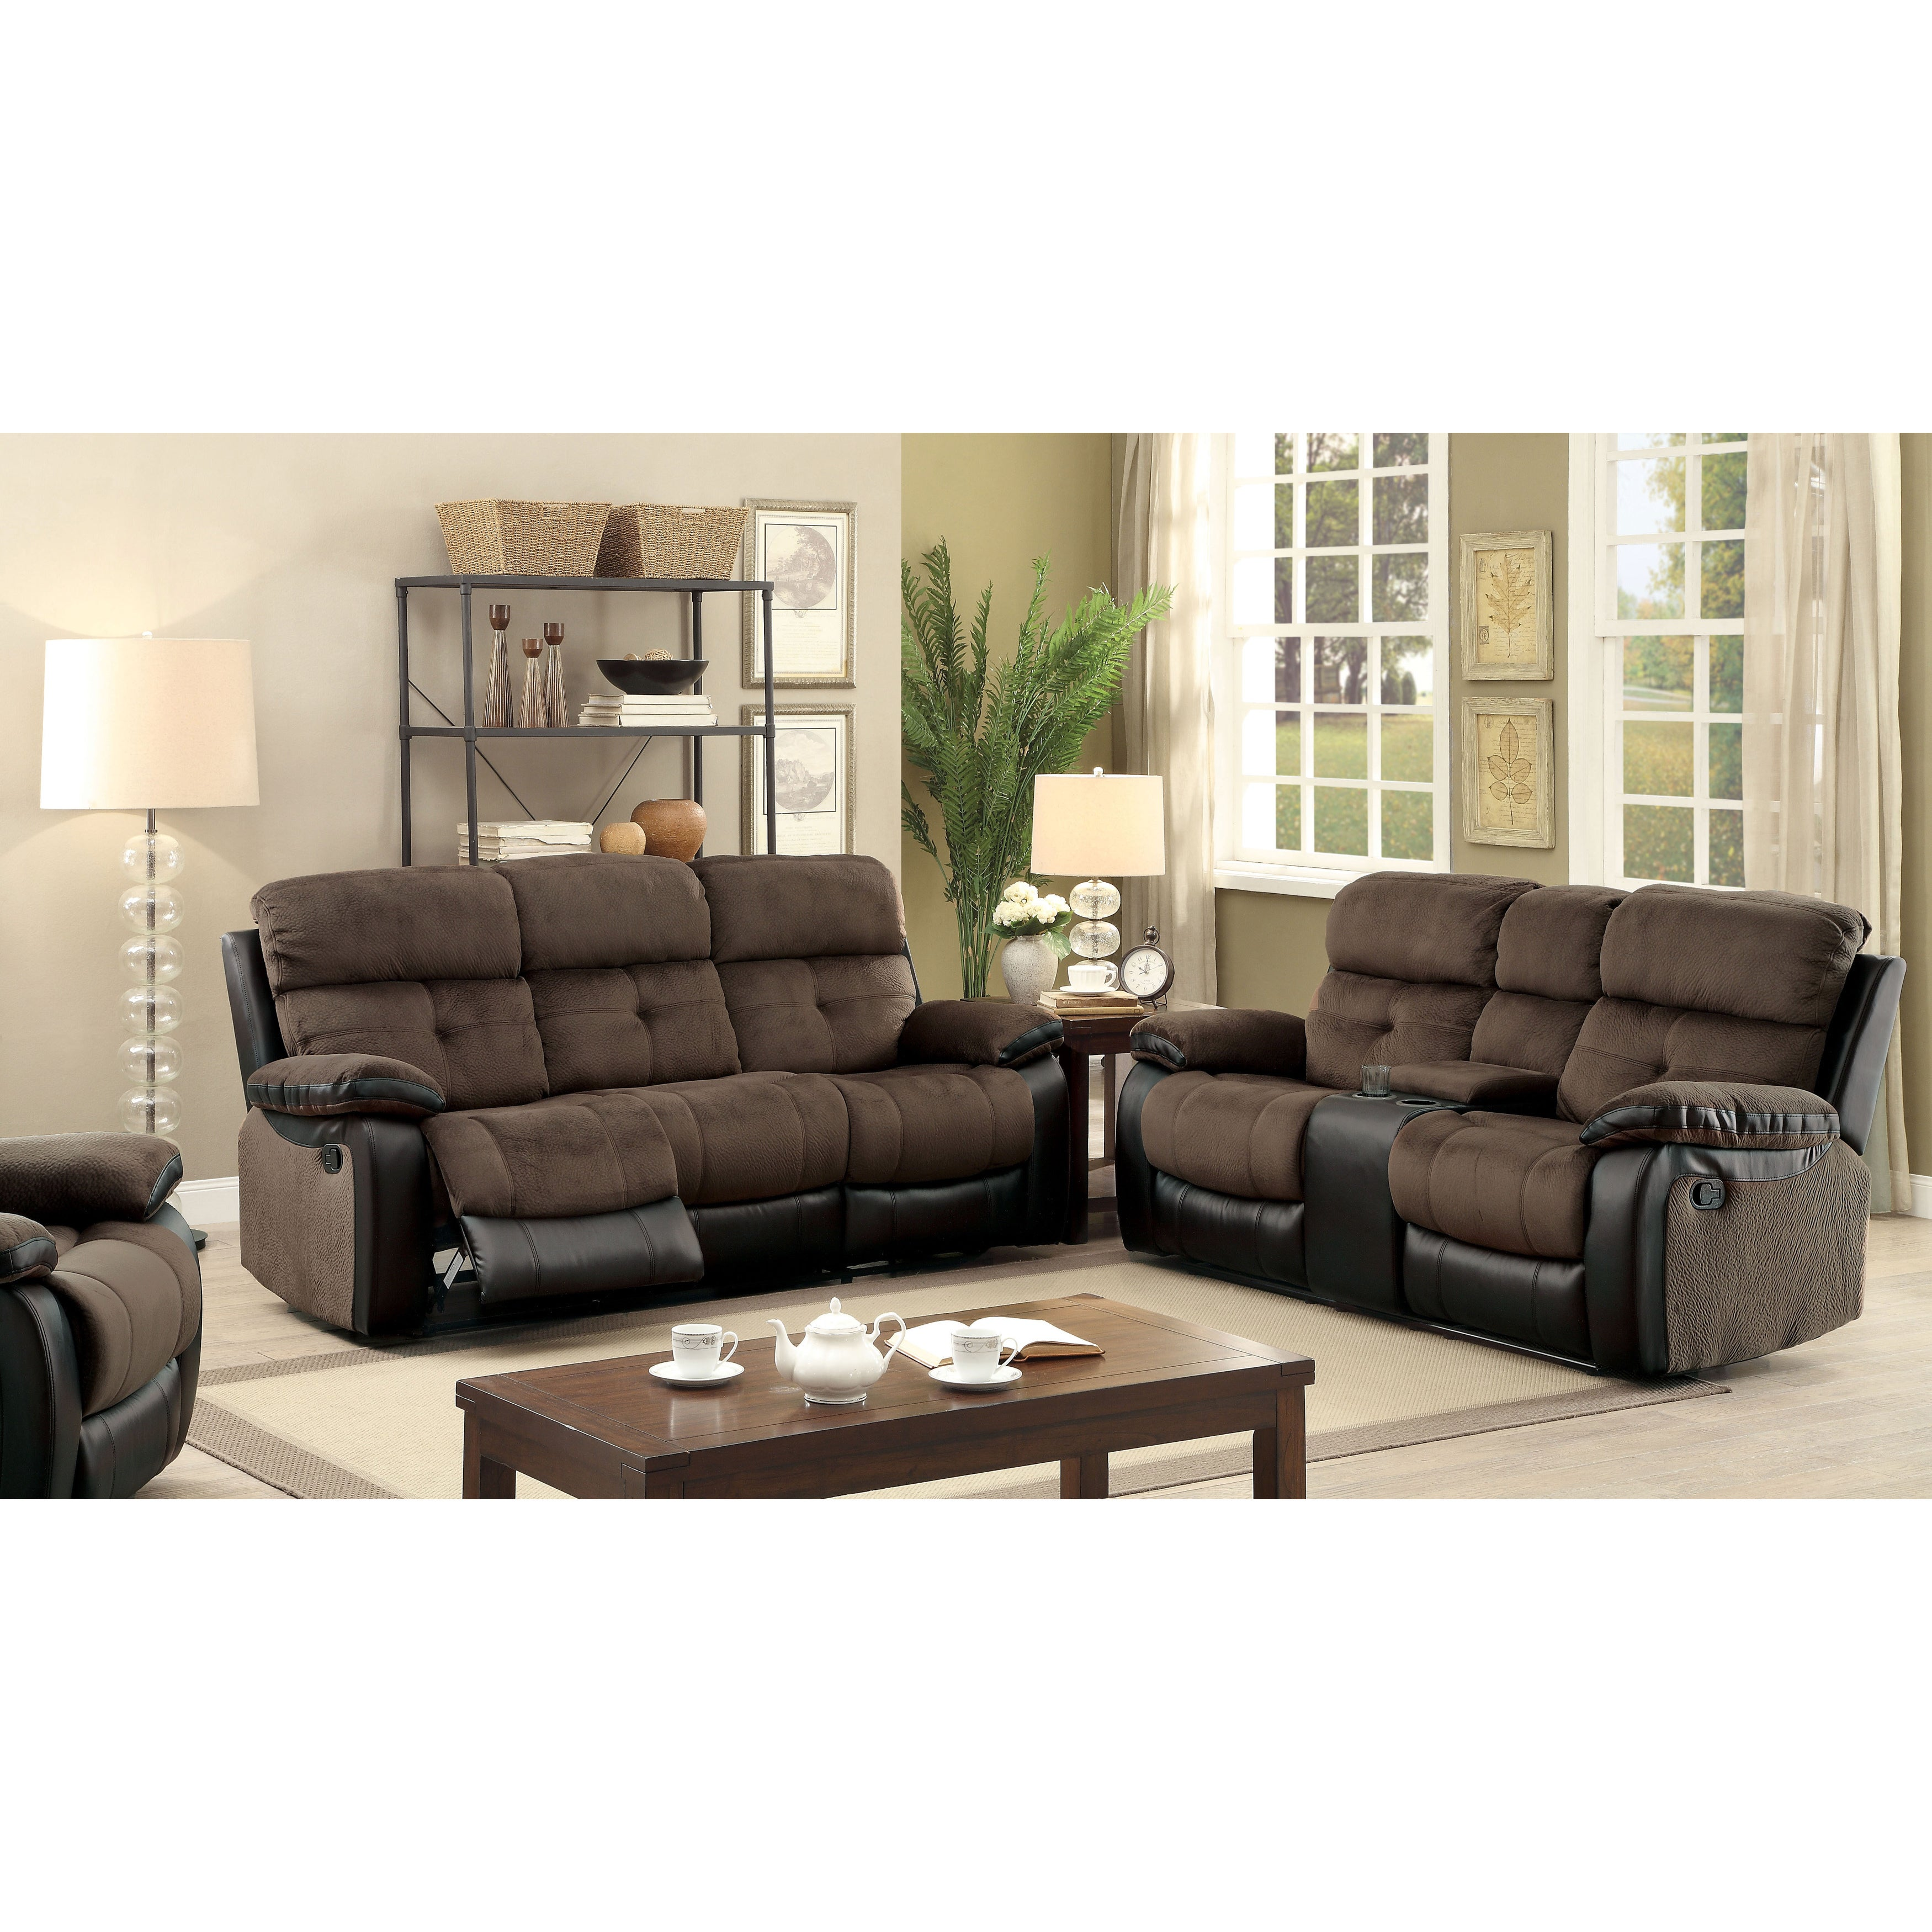 Fawnie Modern Brown and Espresso 3-Piece Reclining Sofa Set by FOA